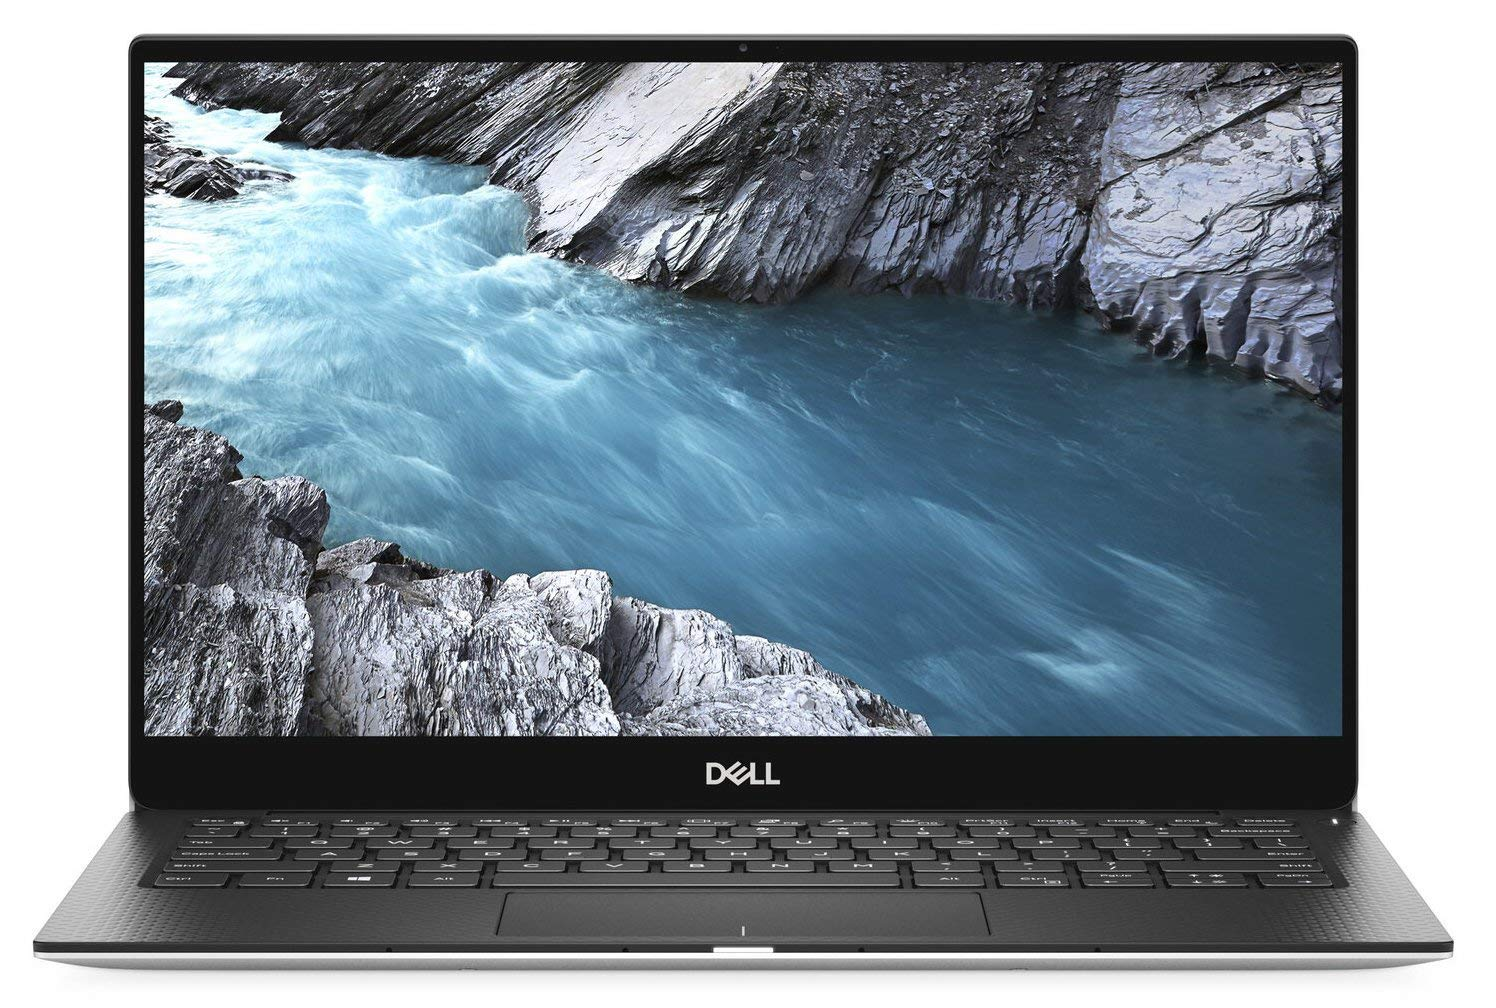 Ultrabook Dell XPS 13 9380 13.3 Full HD Intel Core i7-8565U RAM 8GB SSD 256GB Windows 10 Pro Argintiu